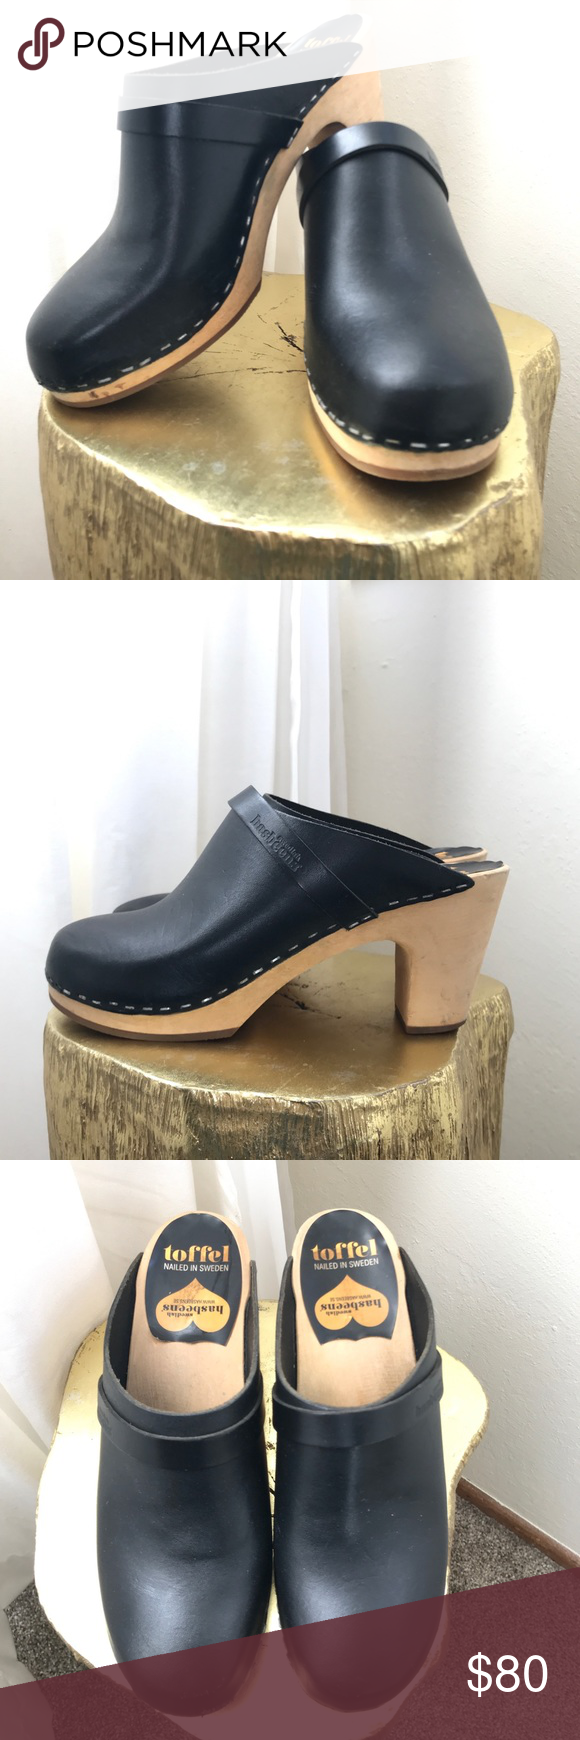 562a5a6f94c Swedish Hasbeens Slip In High Clog 38 Black leather high heeled slip on  clogs with natural wood base. Size is marked 38. I think these would work  best for a ...